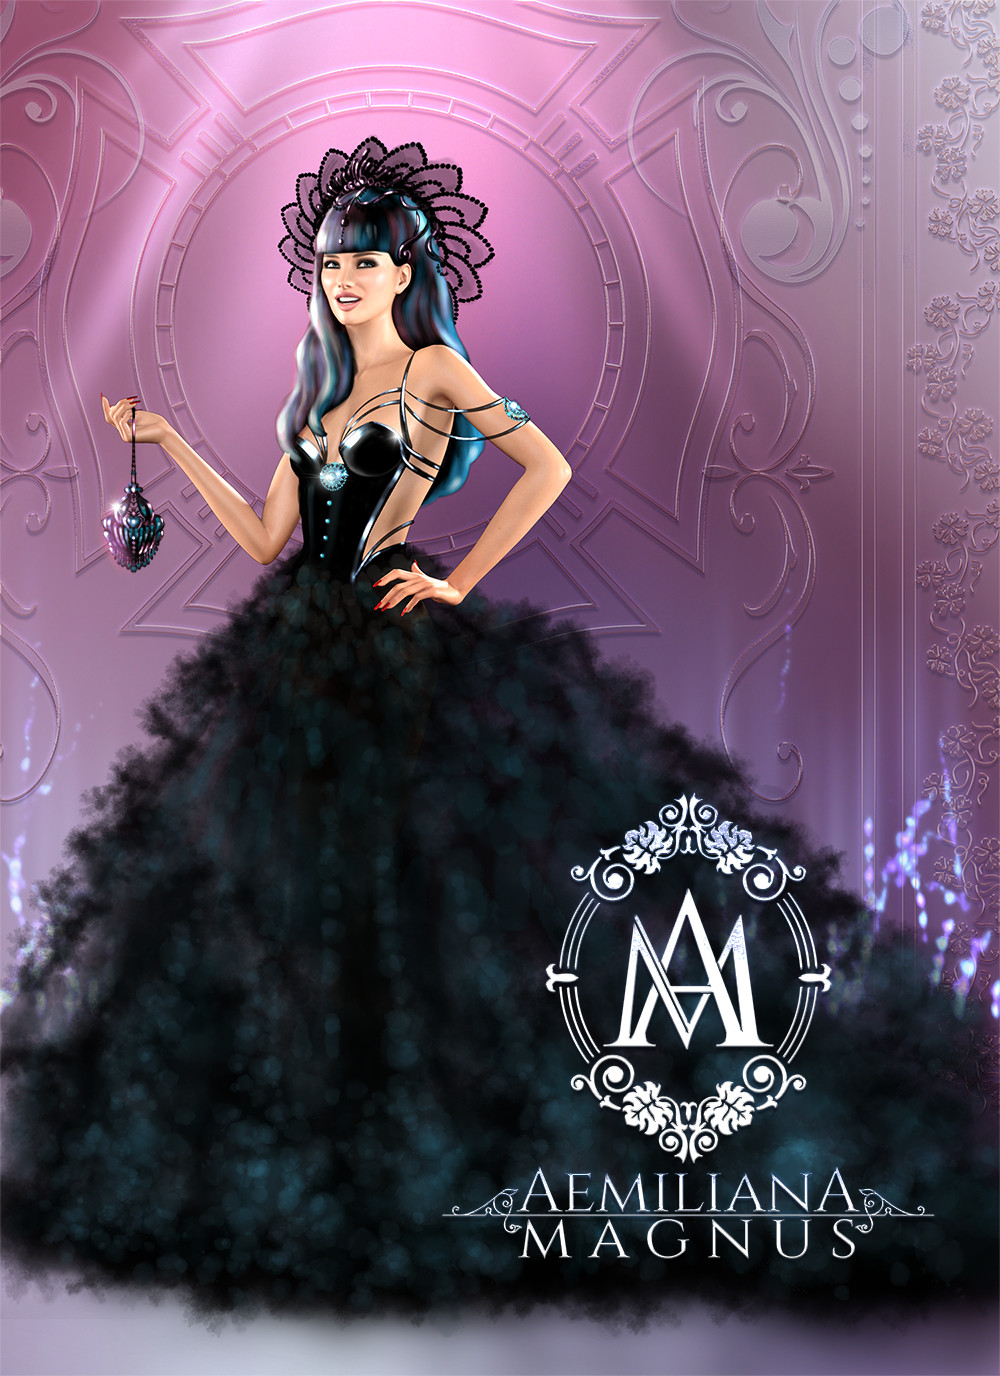 Couture Evening Gown Design by Aemiliana Magnus 2017